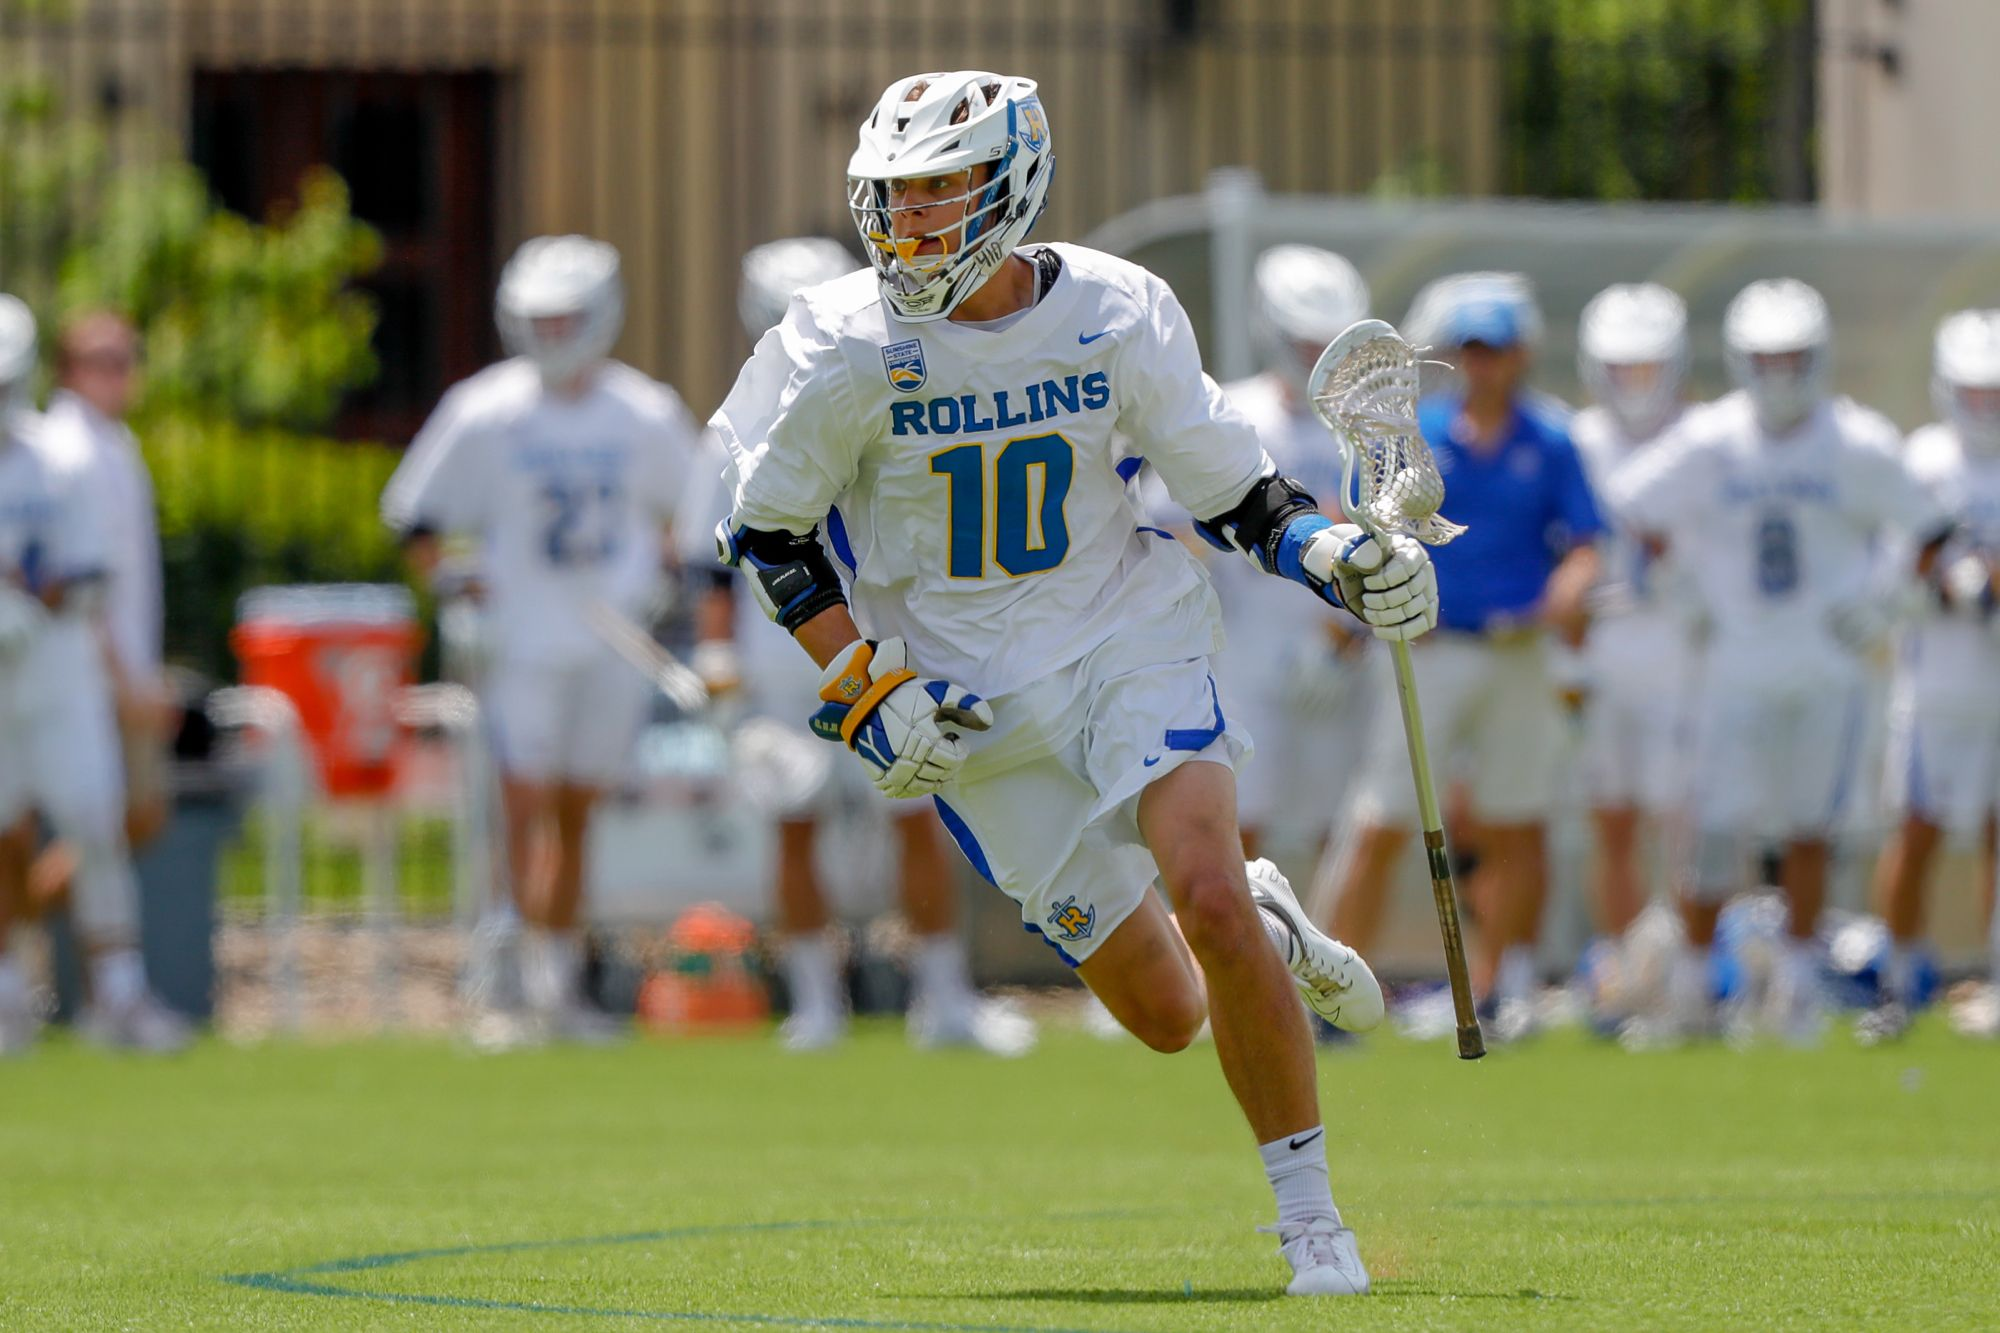 Greg Taicher fully dressed in his Rollins Lacrosse uniform running on the field.